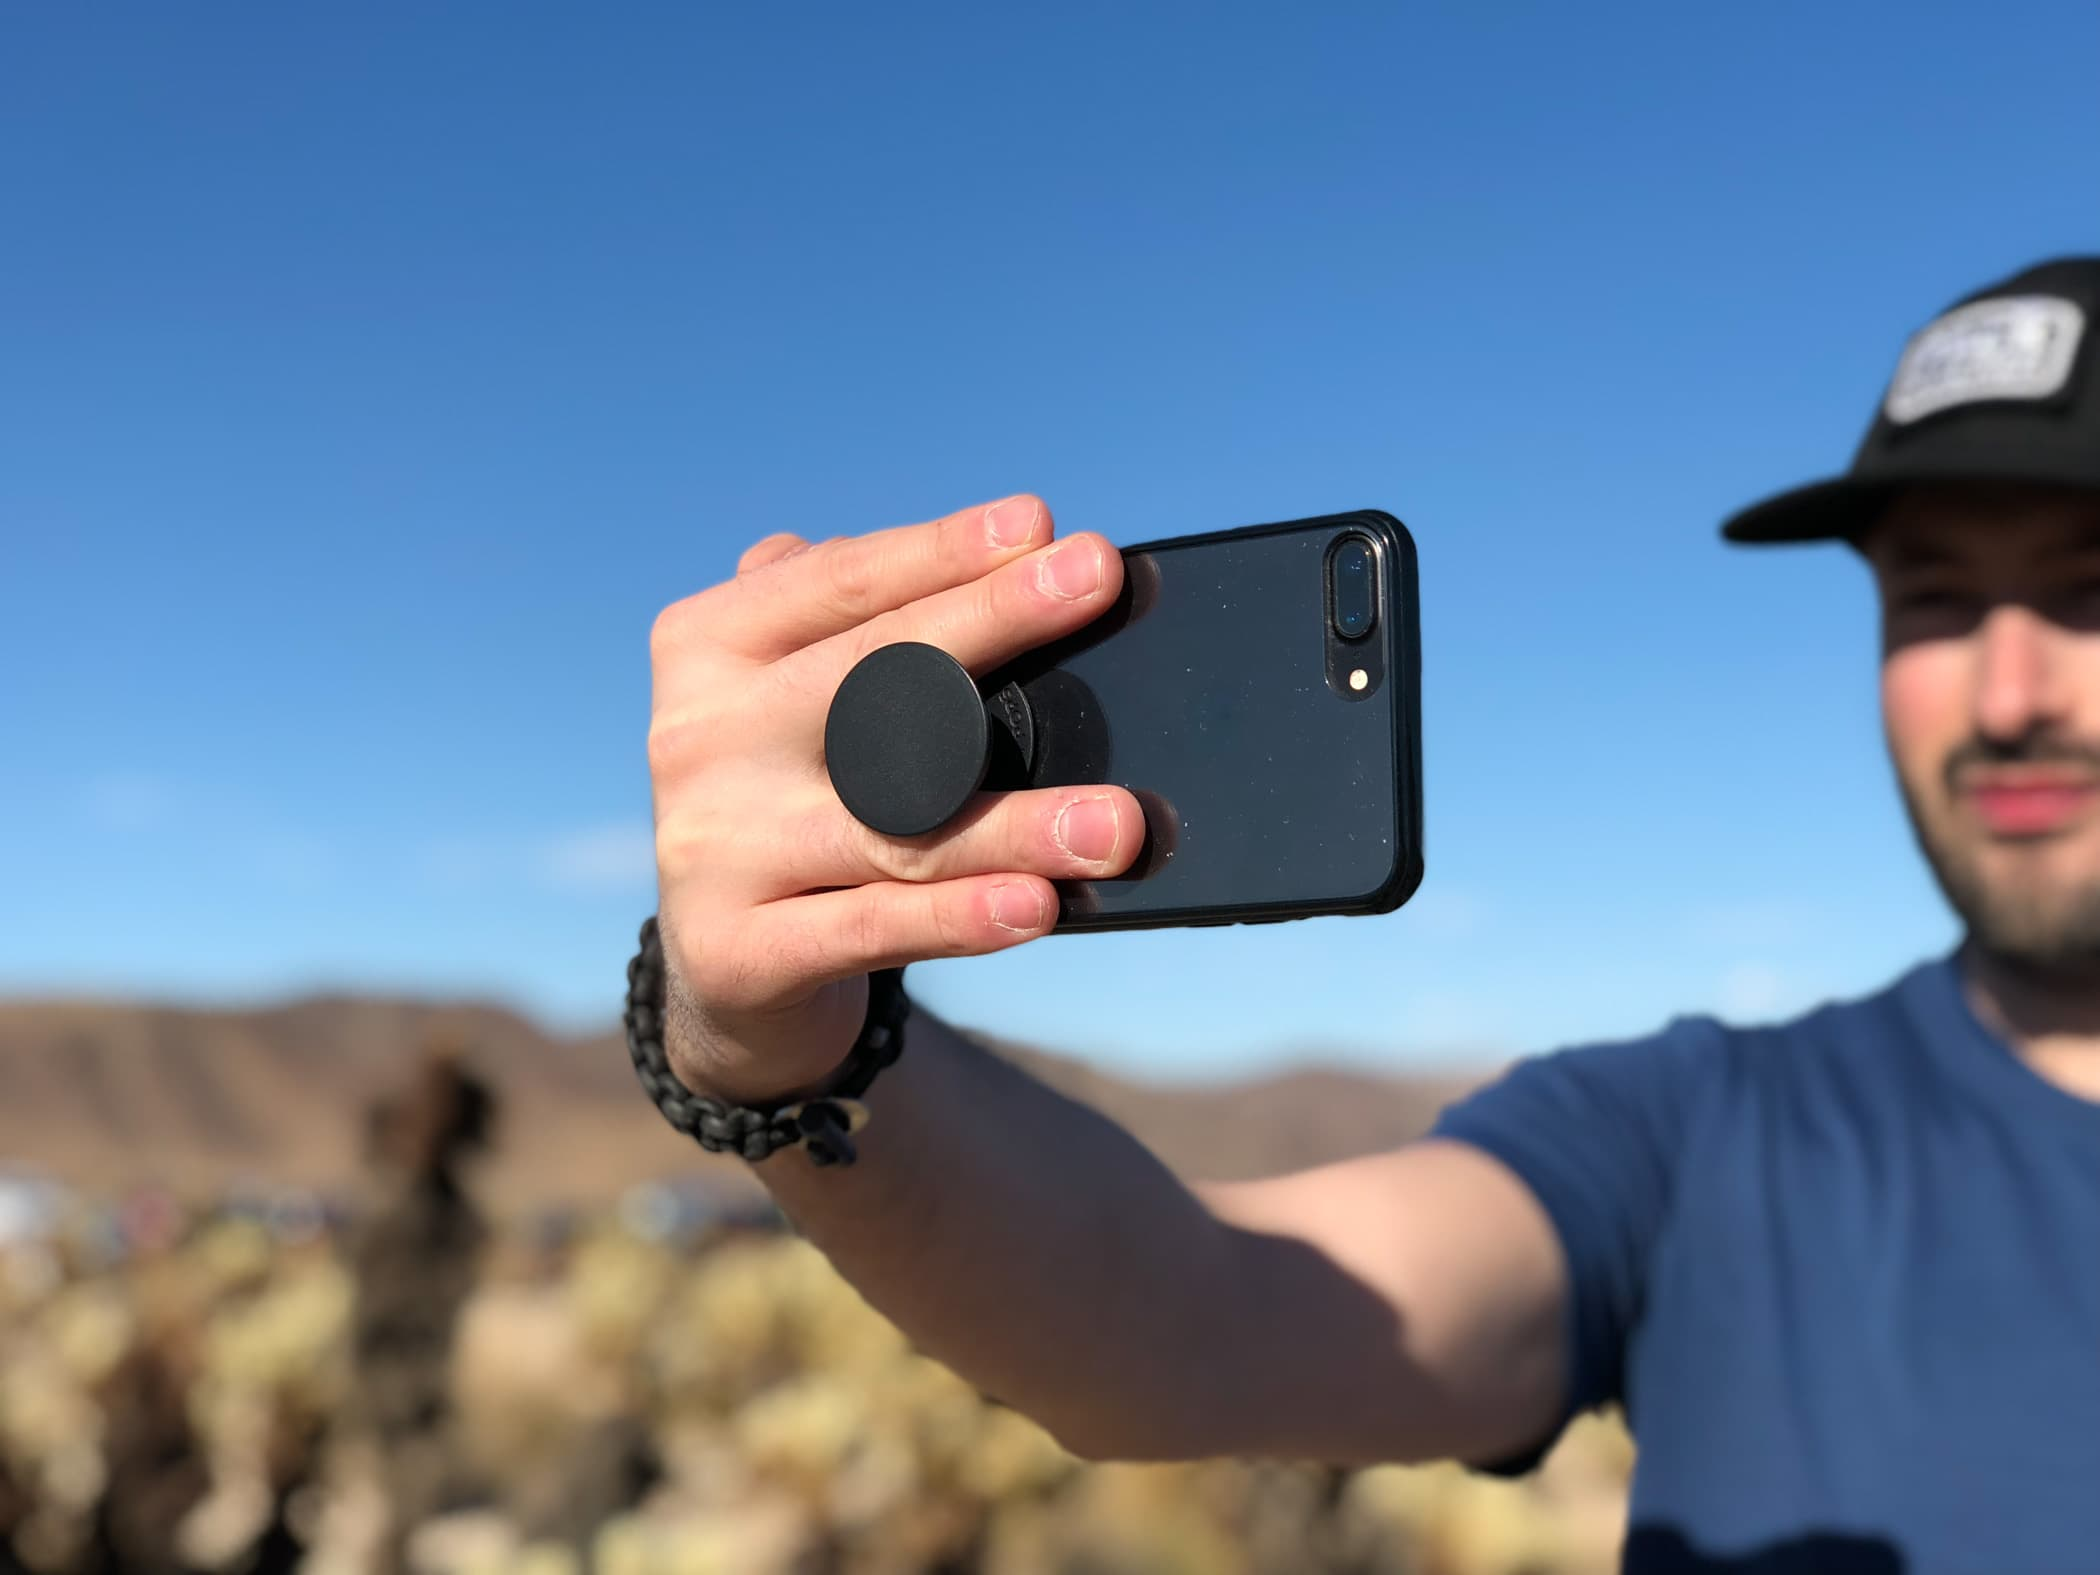 Testing the PopSockets in Joshua Tree